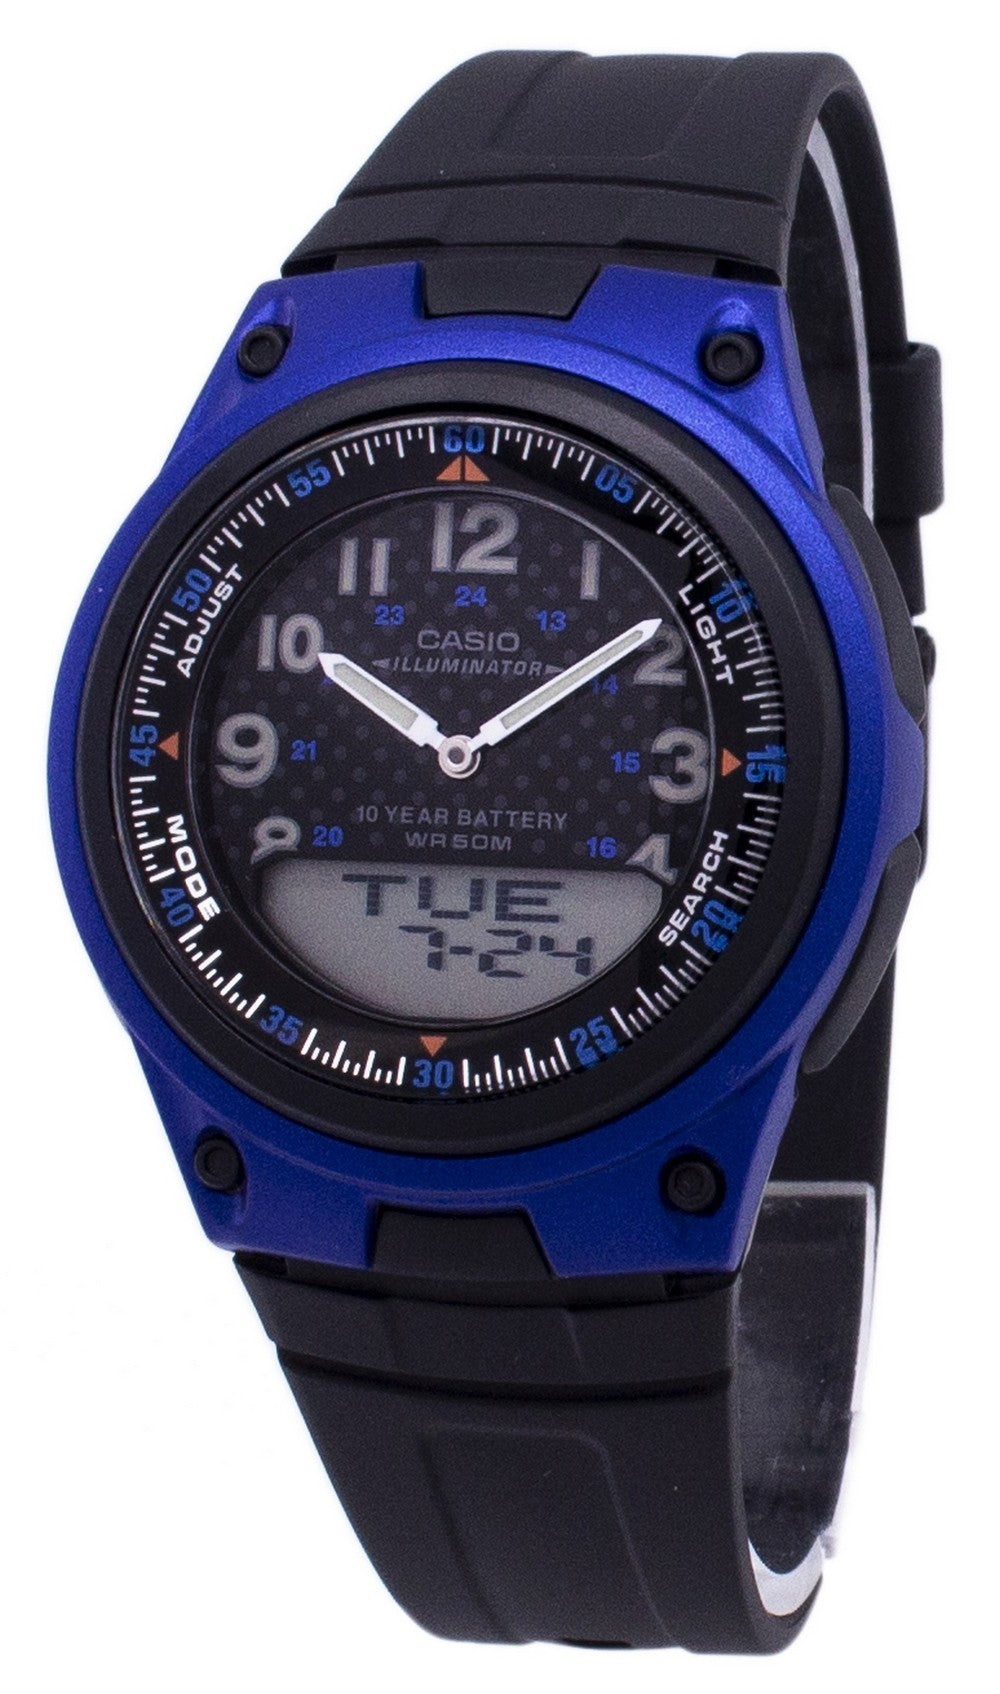 Casio Analog Digital  Illuminator Telememo Black/Blue AW-80-2BVDF AW-80-2BV Men's Watch